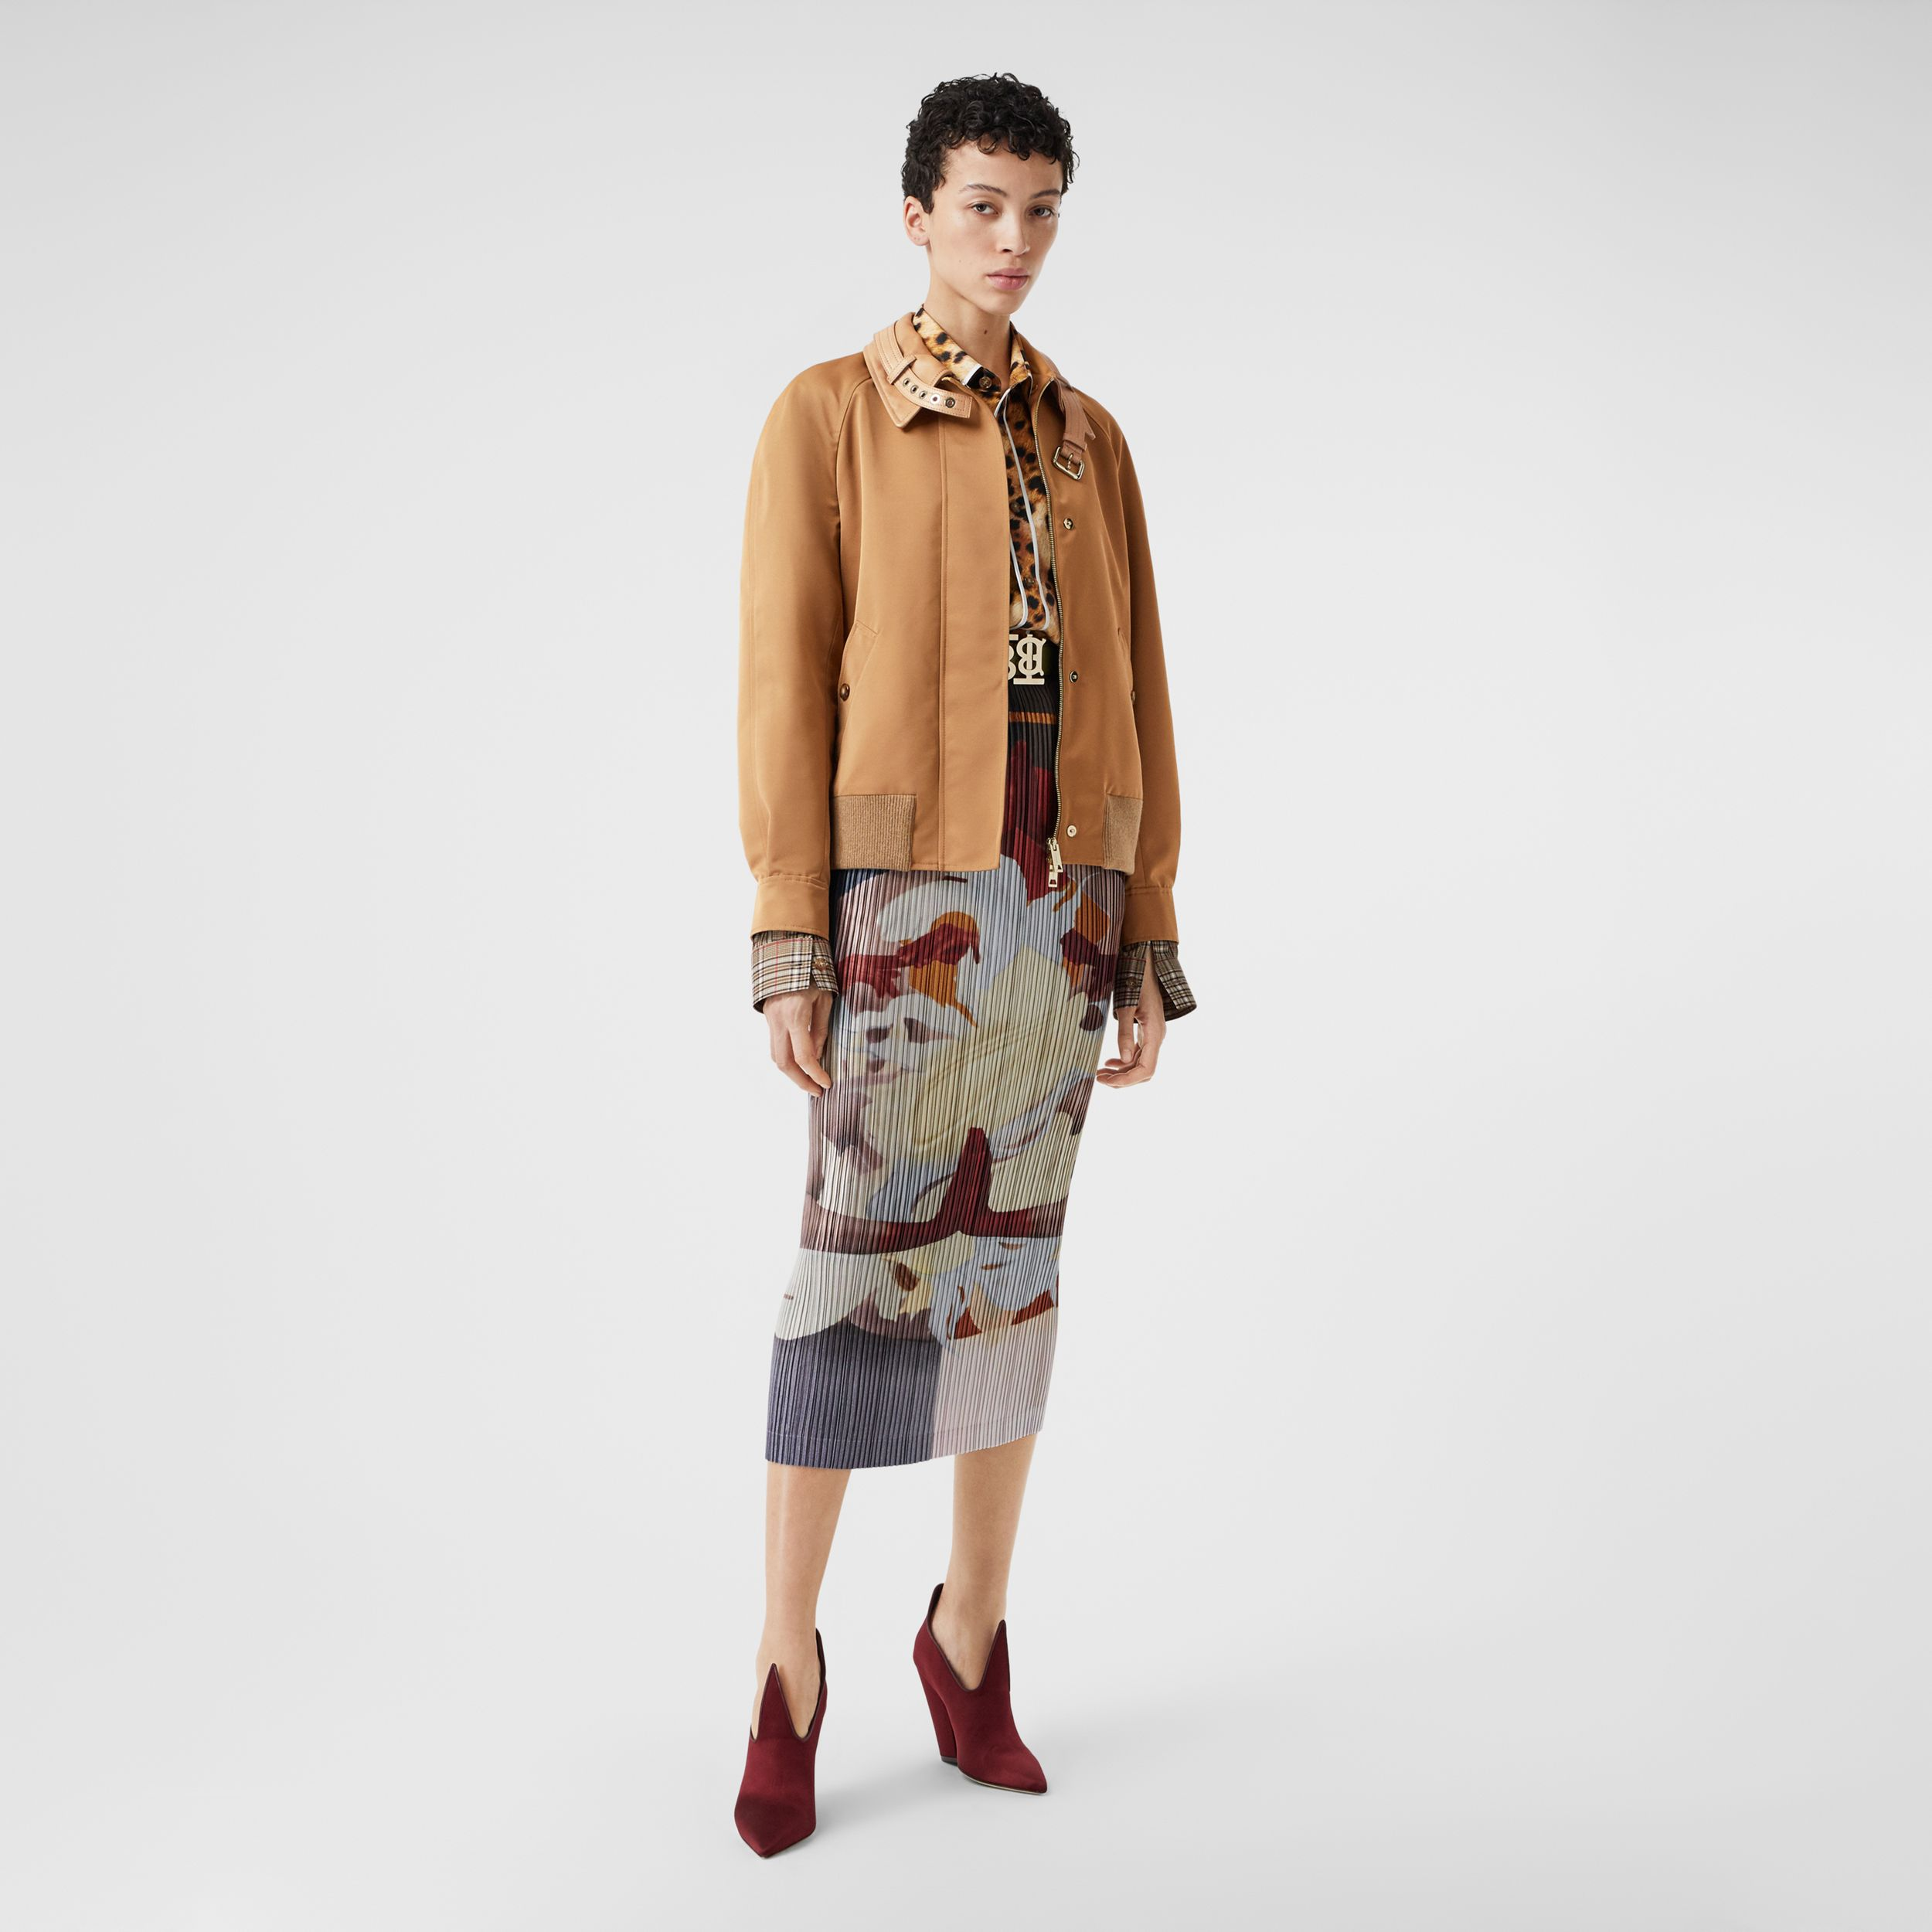 Lambskin Trim Technical Wool Silk Harrington Jacket in Camel - Women | Burberry Hong Kong S.A.R. - 1